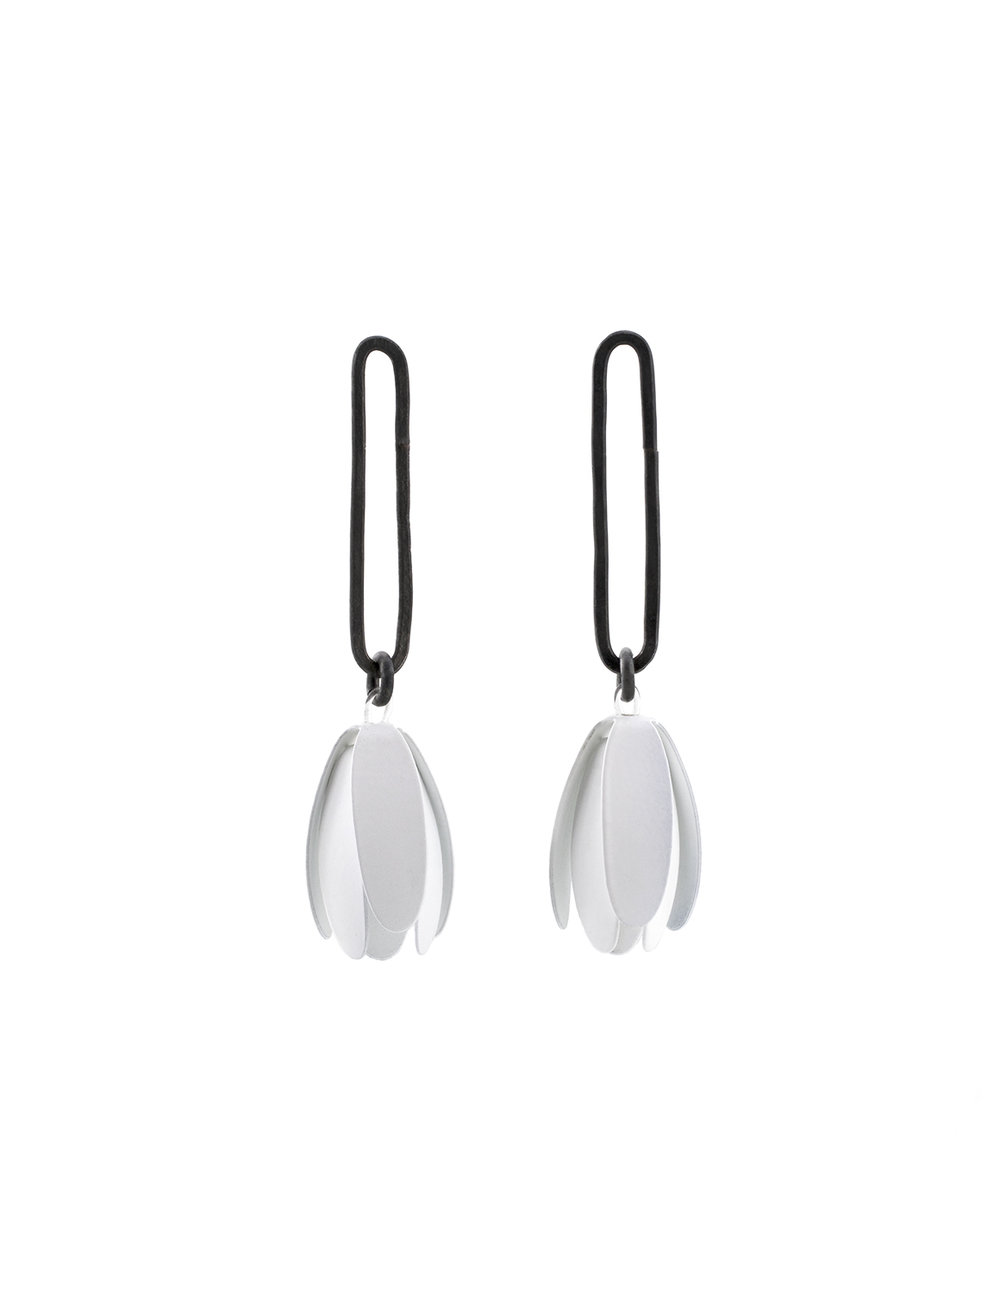 09_maia_leppo_white_trumpet_flower_earrings.jpg